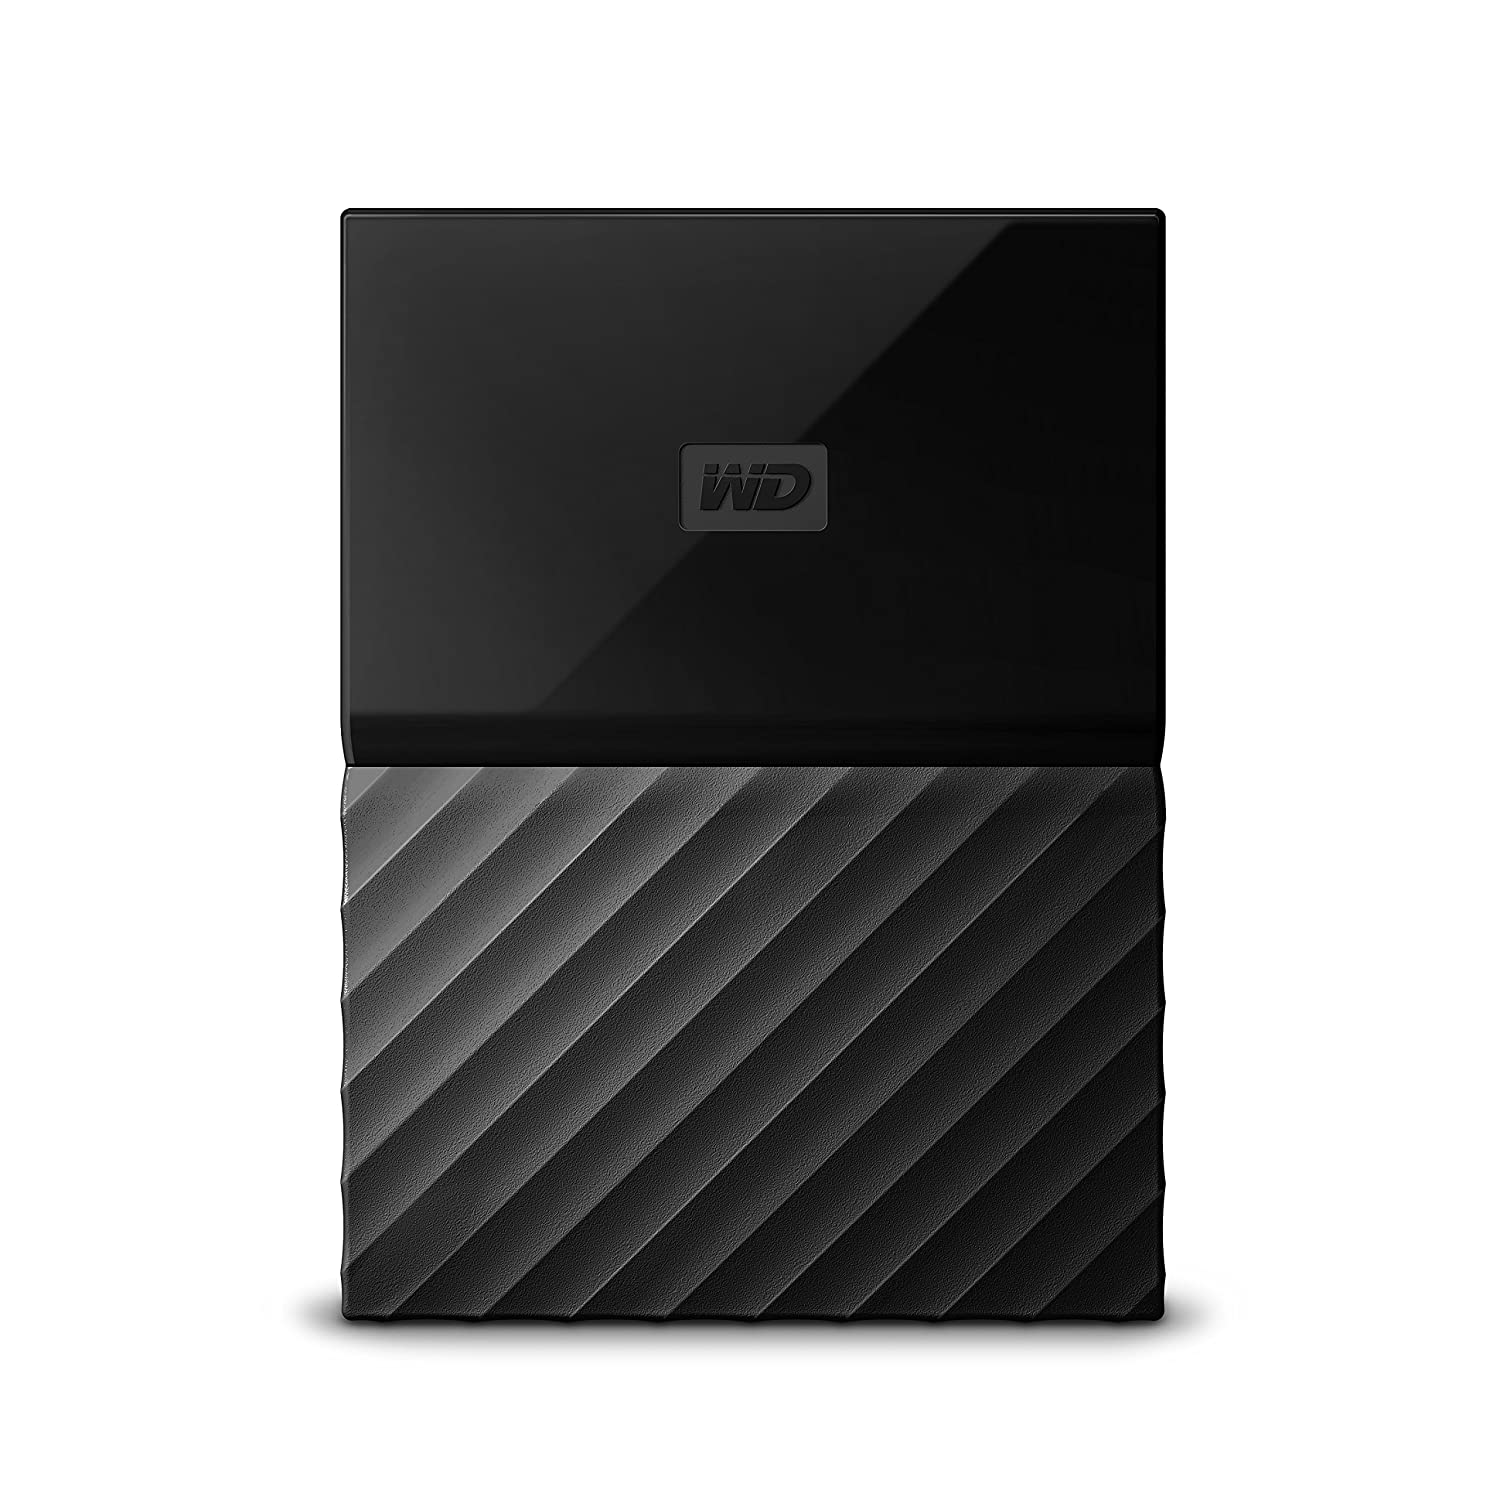 WD My Passport 2TB Portable External Hard Drive (Black)